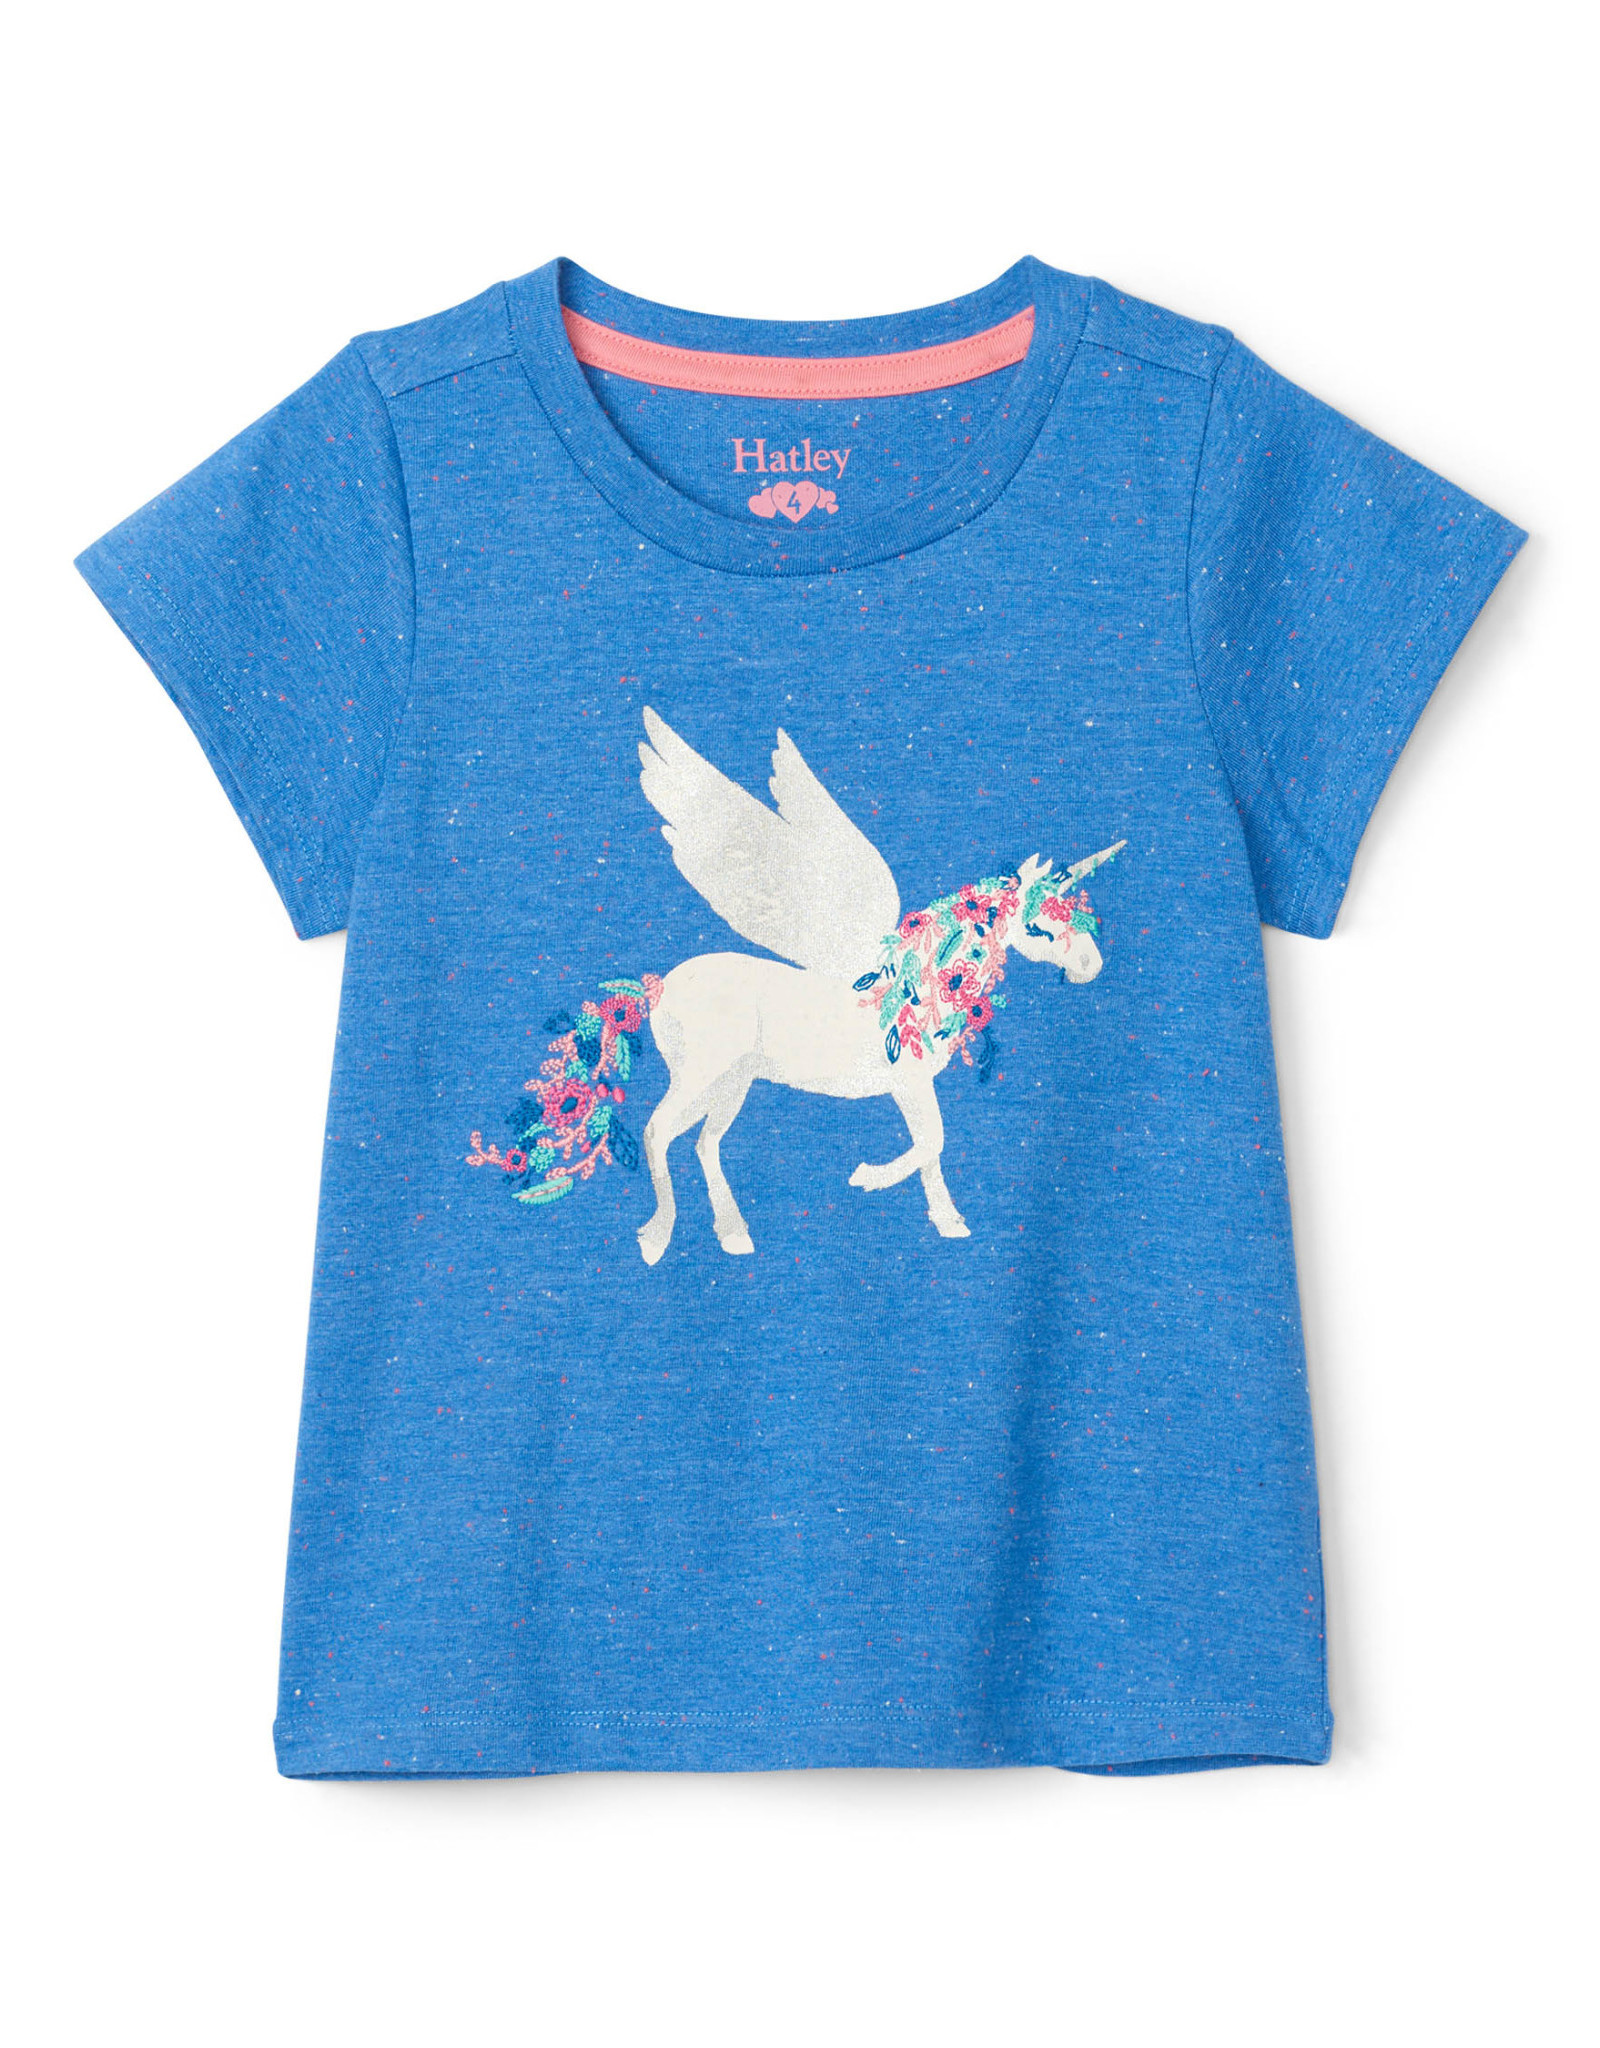 LITTLE BLUE HOUSE (HATLEY) GRAPHIC TEE